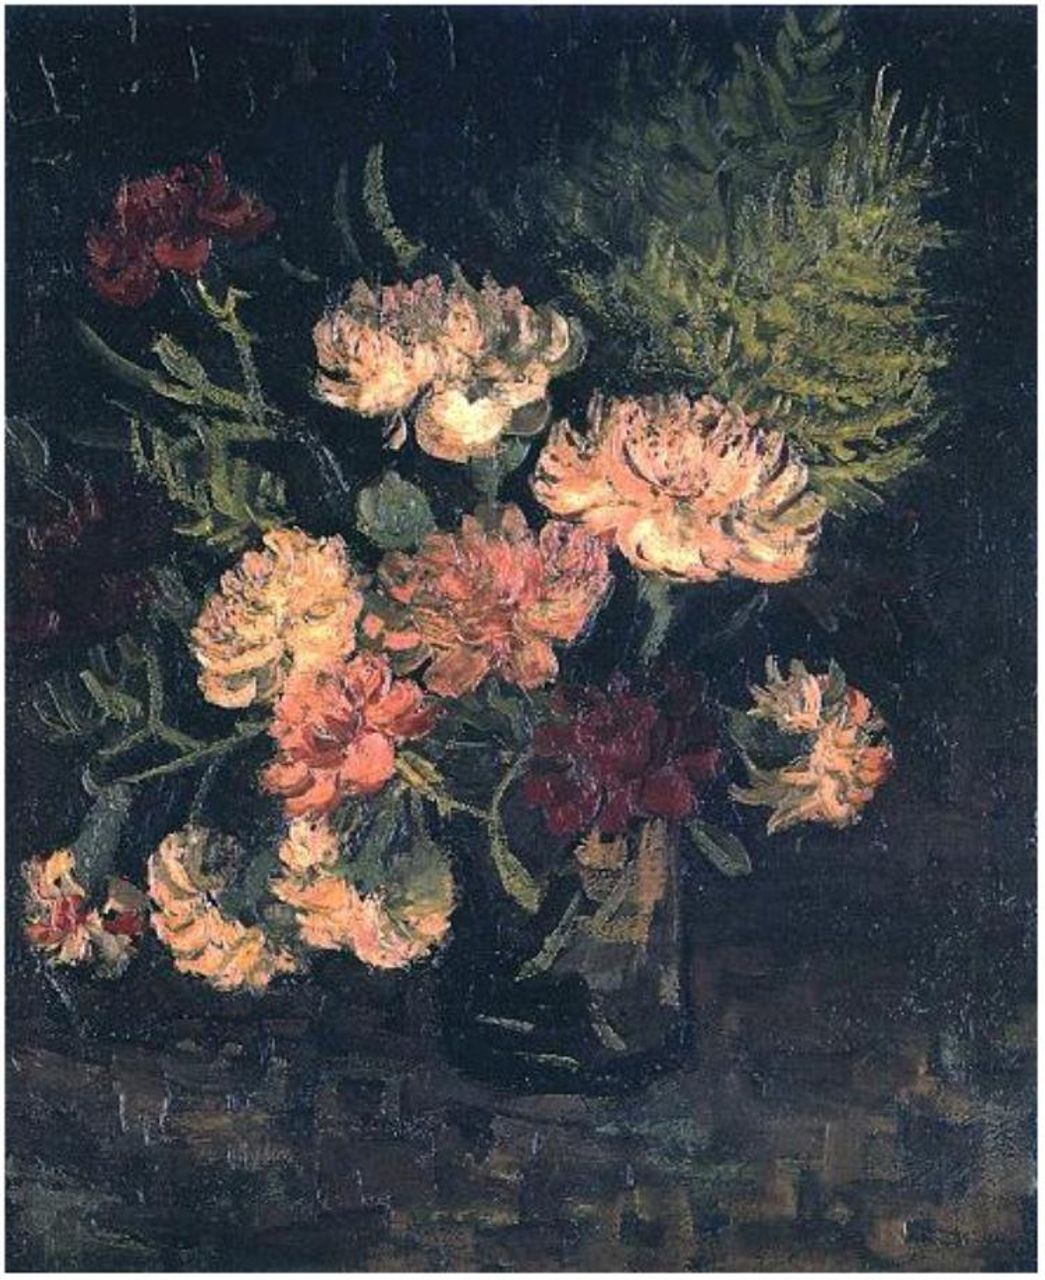 Vase with Carnations, Vincent van Gogh Painting, Oil on Canvas Paris: Summer, 1886 The Detroit Institute of Arts